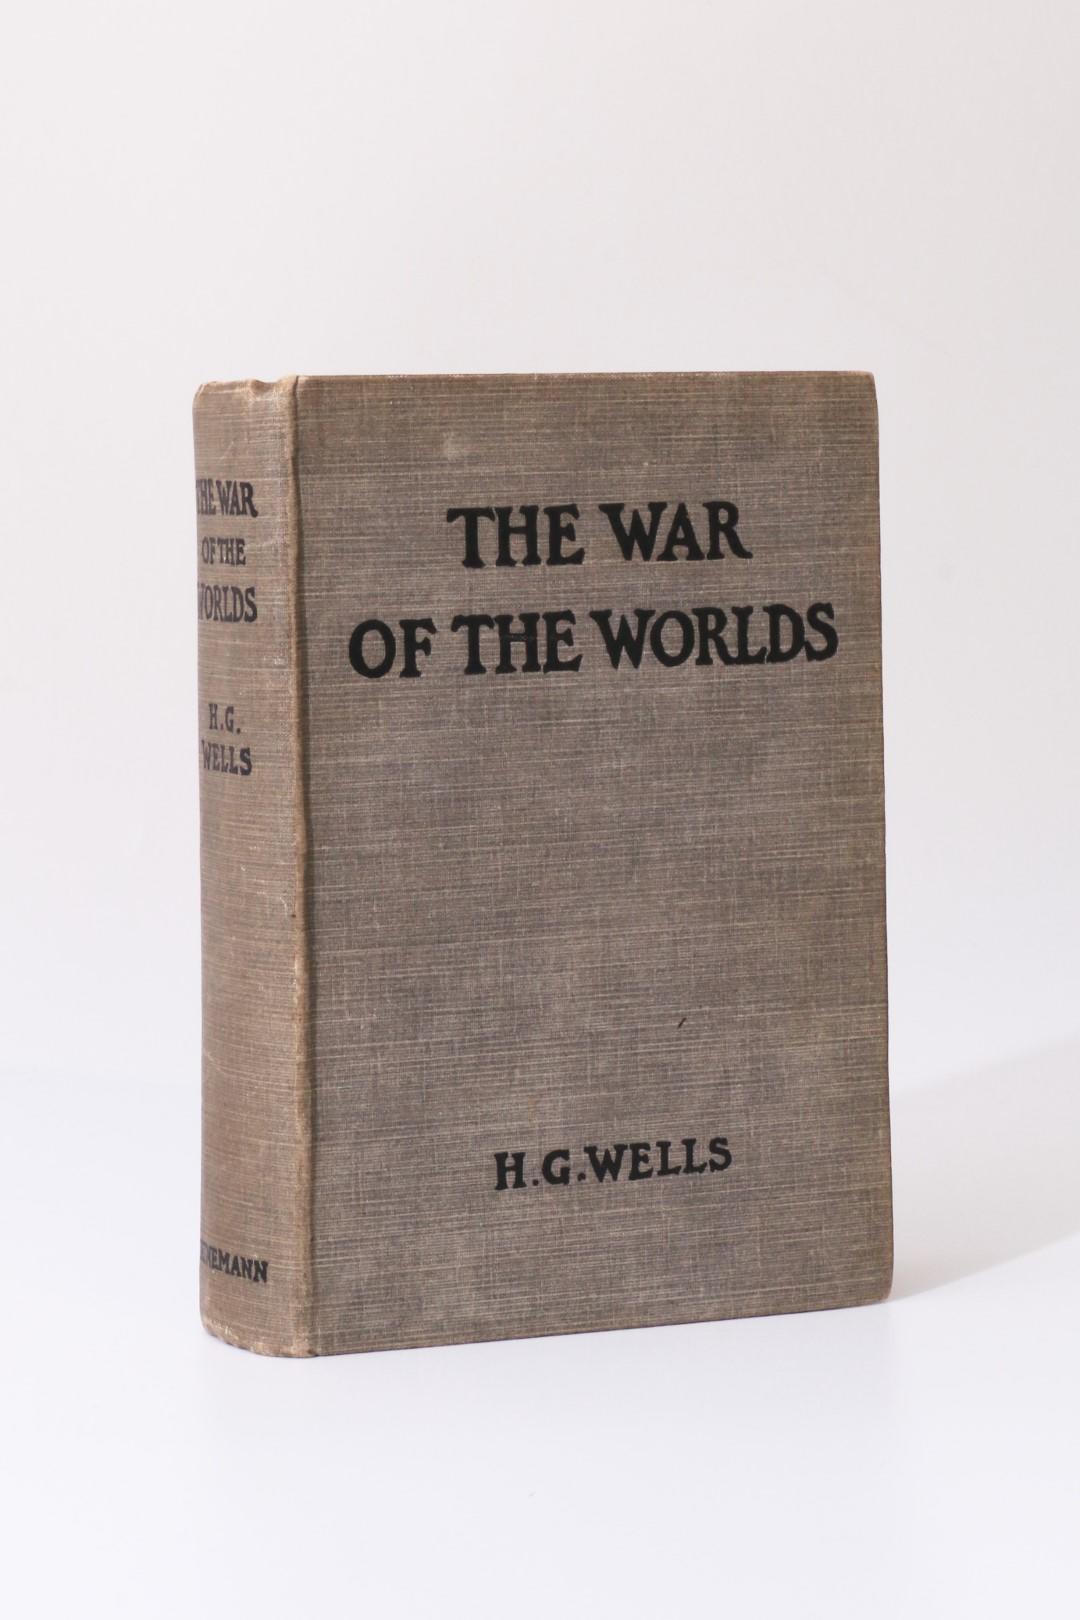 H.G. Wells - The War of the Worlds - Heinemann, 1898, First Edition.